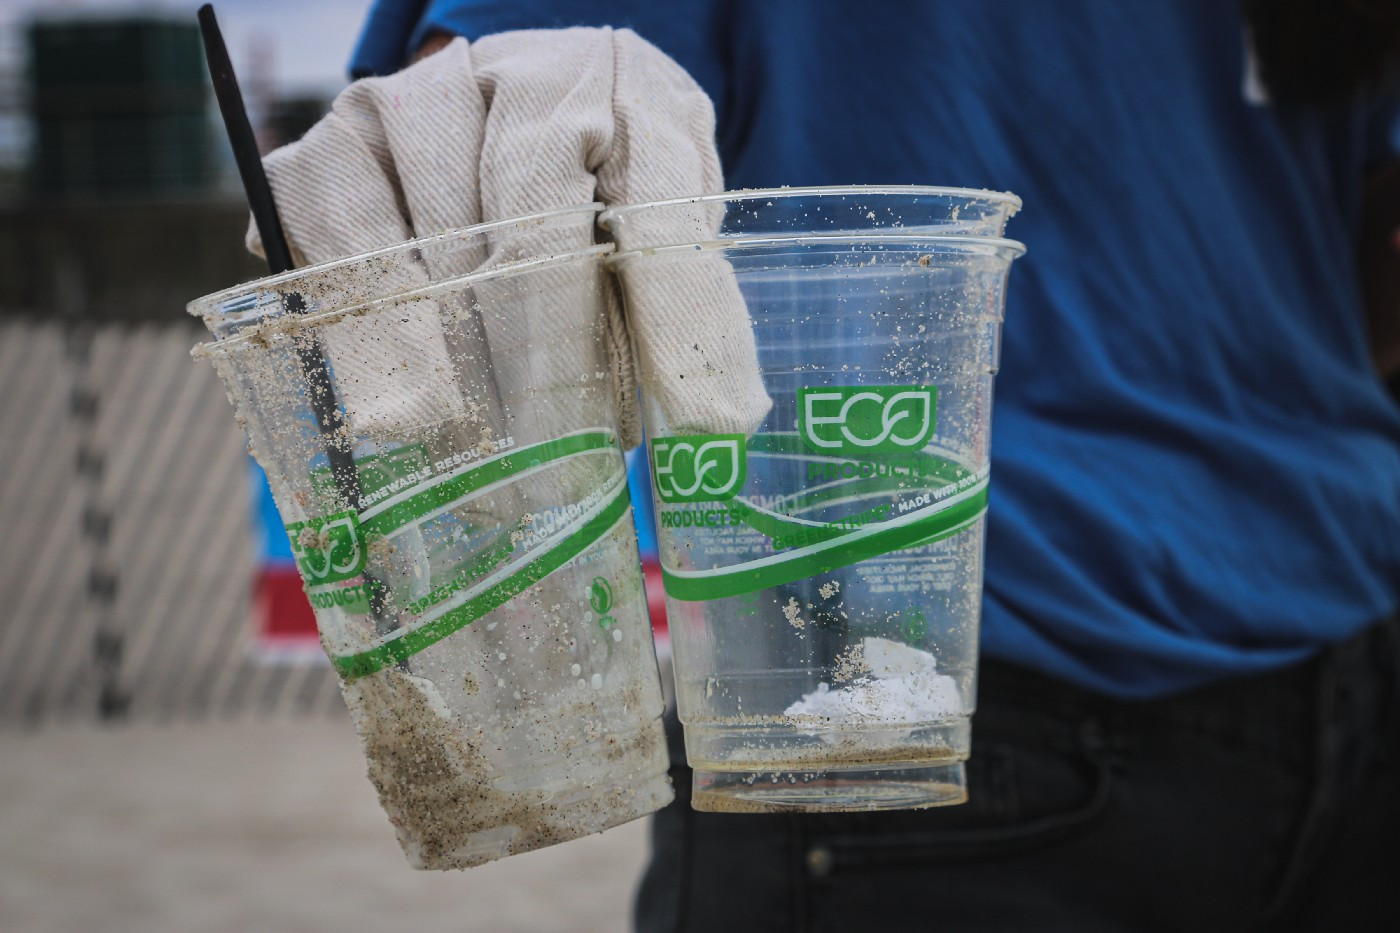 A person wearing plastic medical gloves. They are holding 4 biodegradable, compostable ECO cups. The person is wearing a blue shirt and black pants. They are standing on the beach.